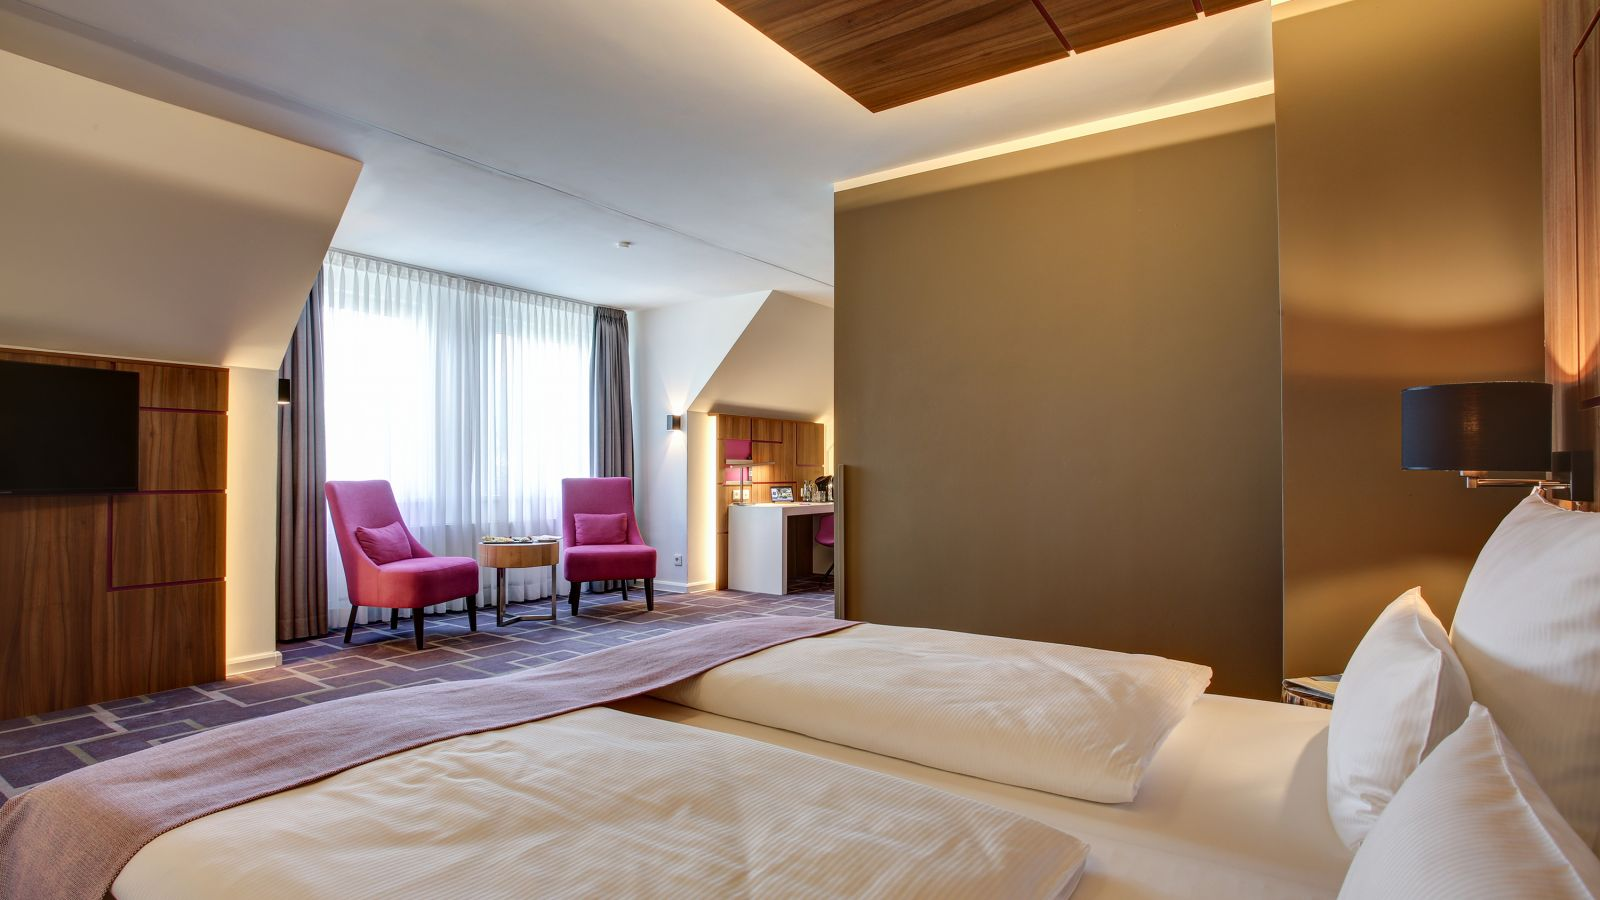 Get an overview of the various room categories at the FourSide Hotel Braunschweig